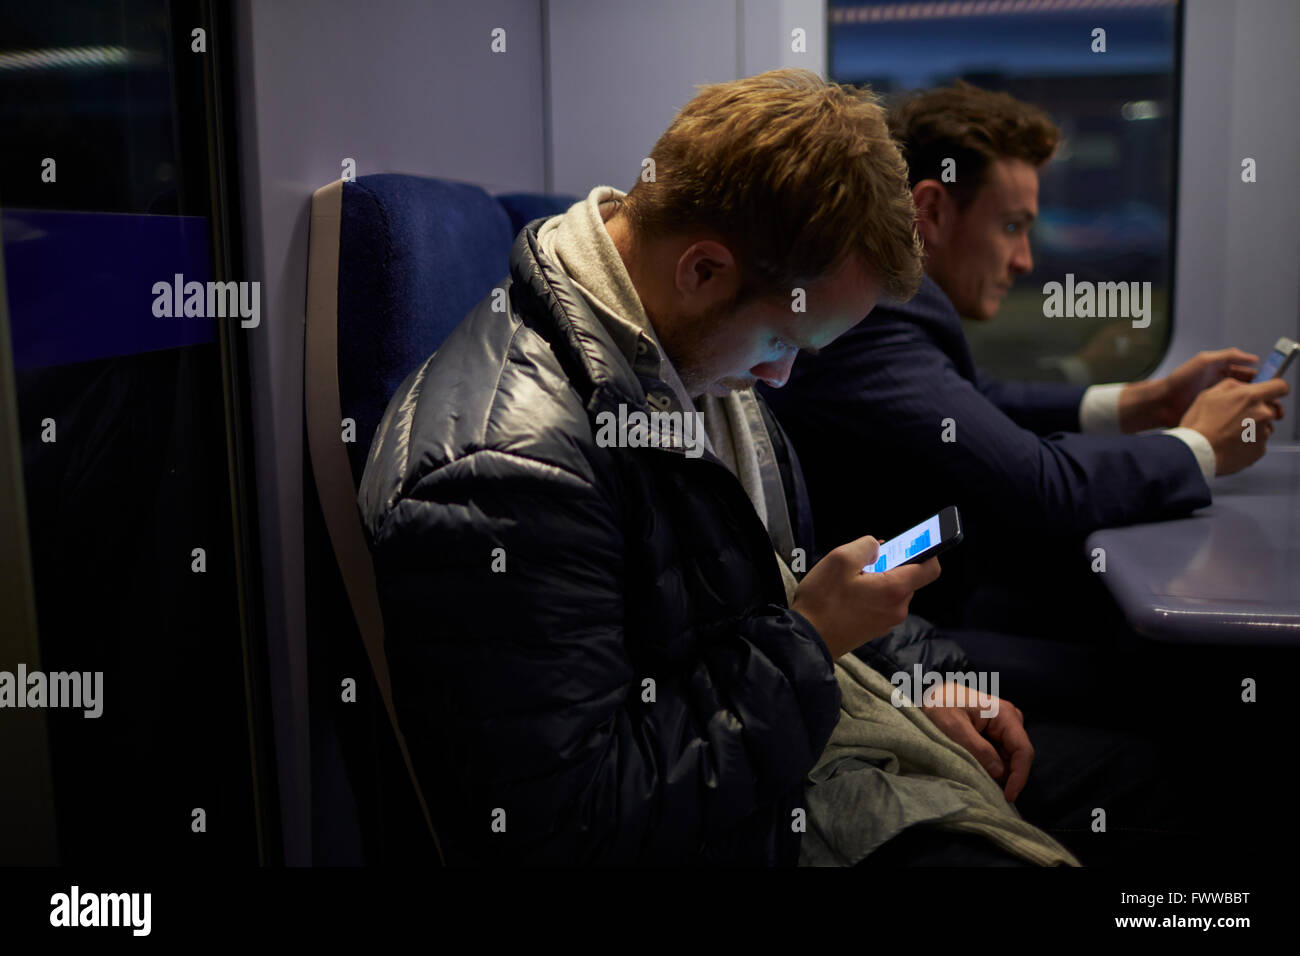 Man Sitting In Train Carriage Sending Text Message - Stock Image